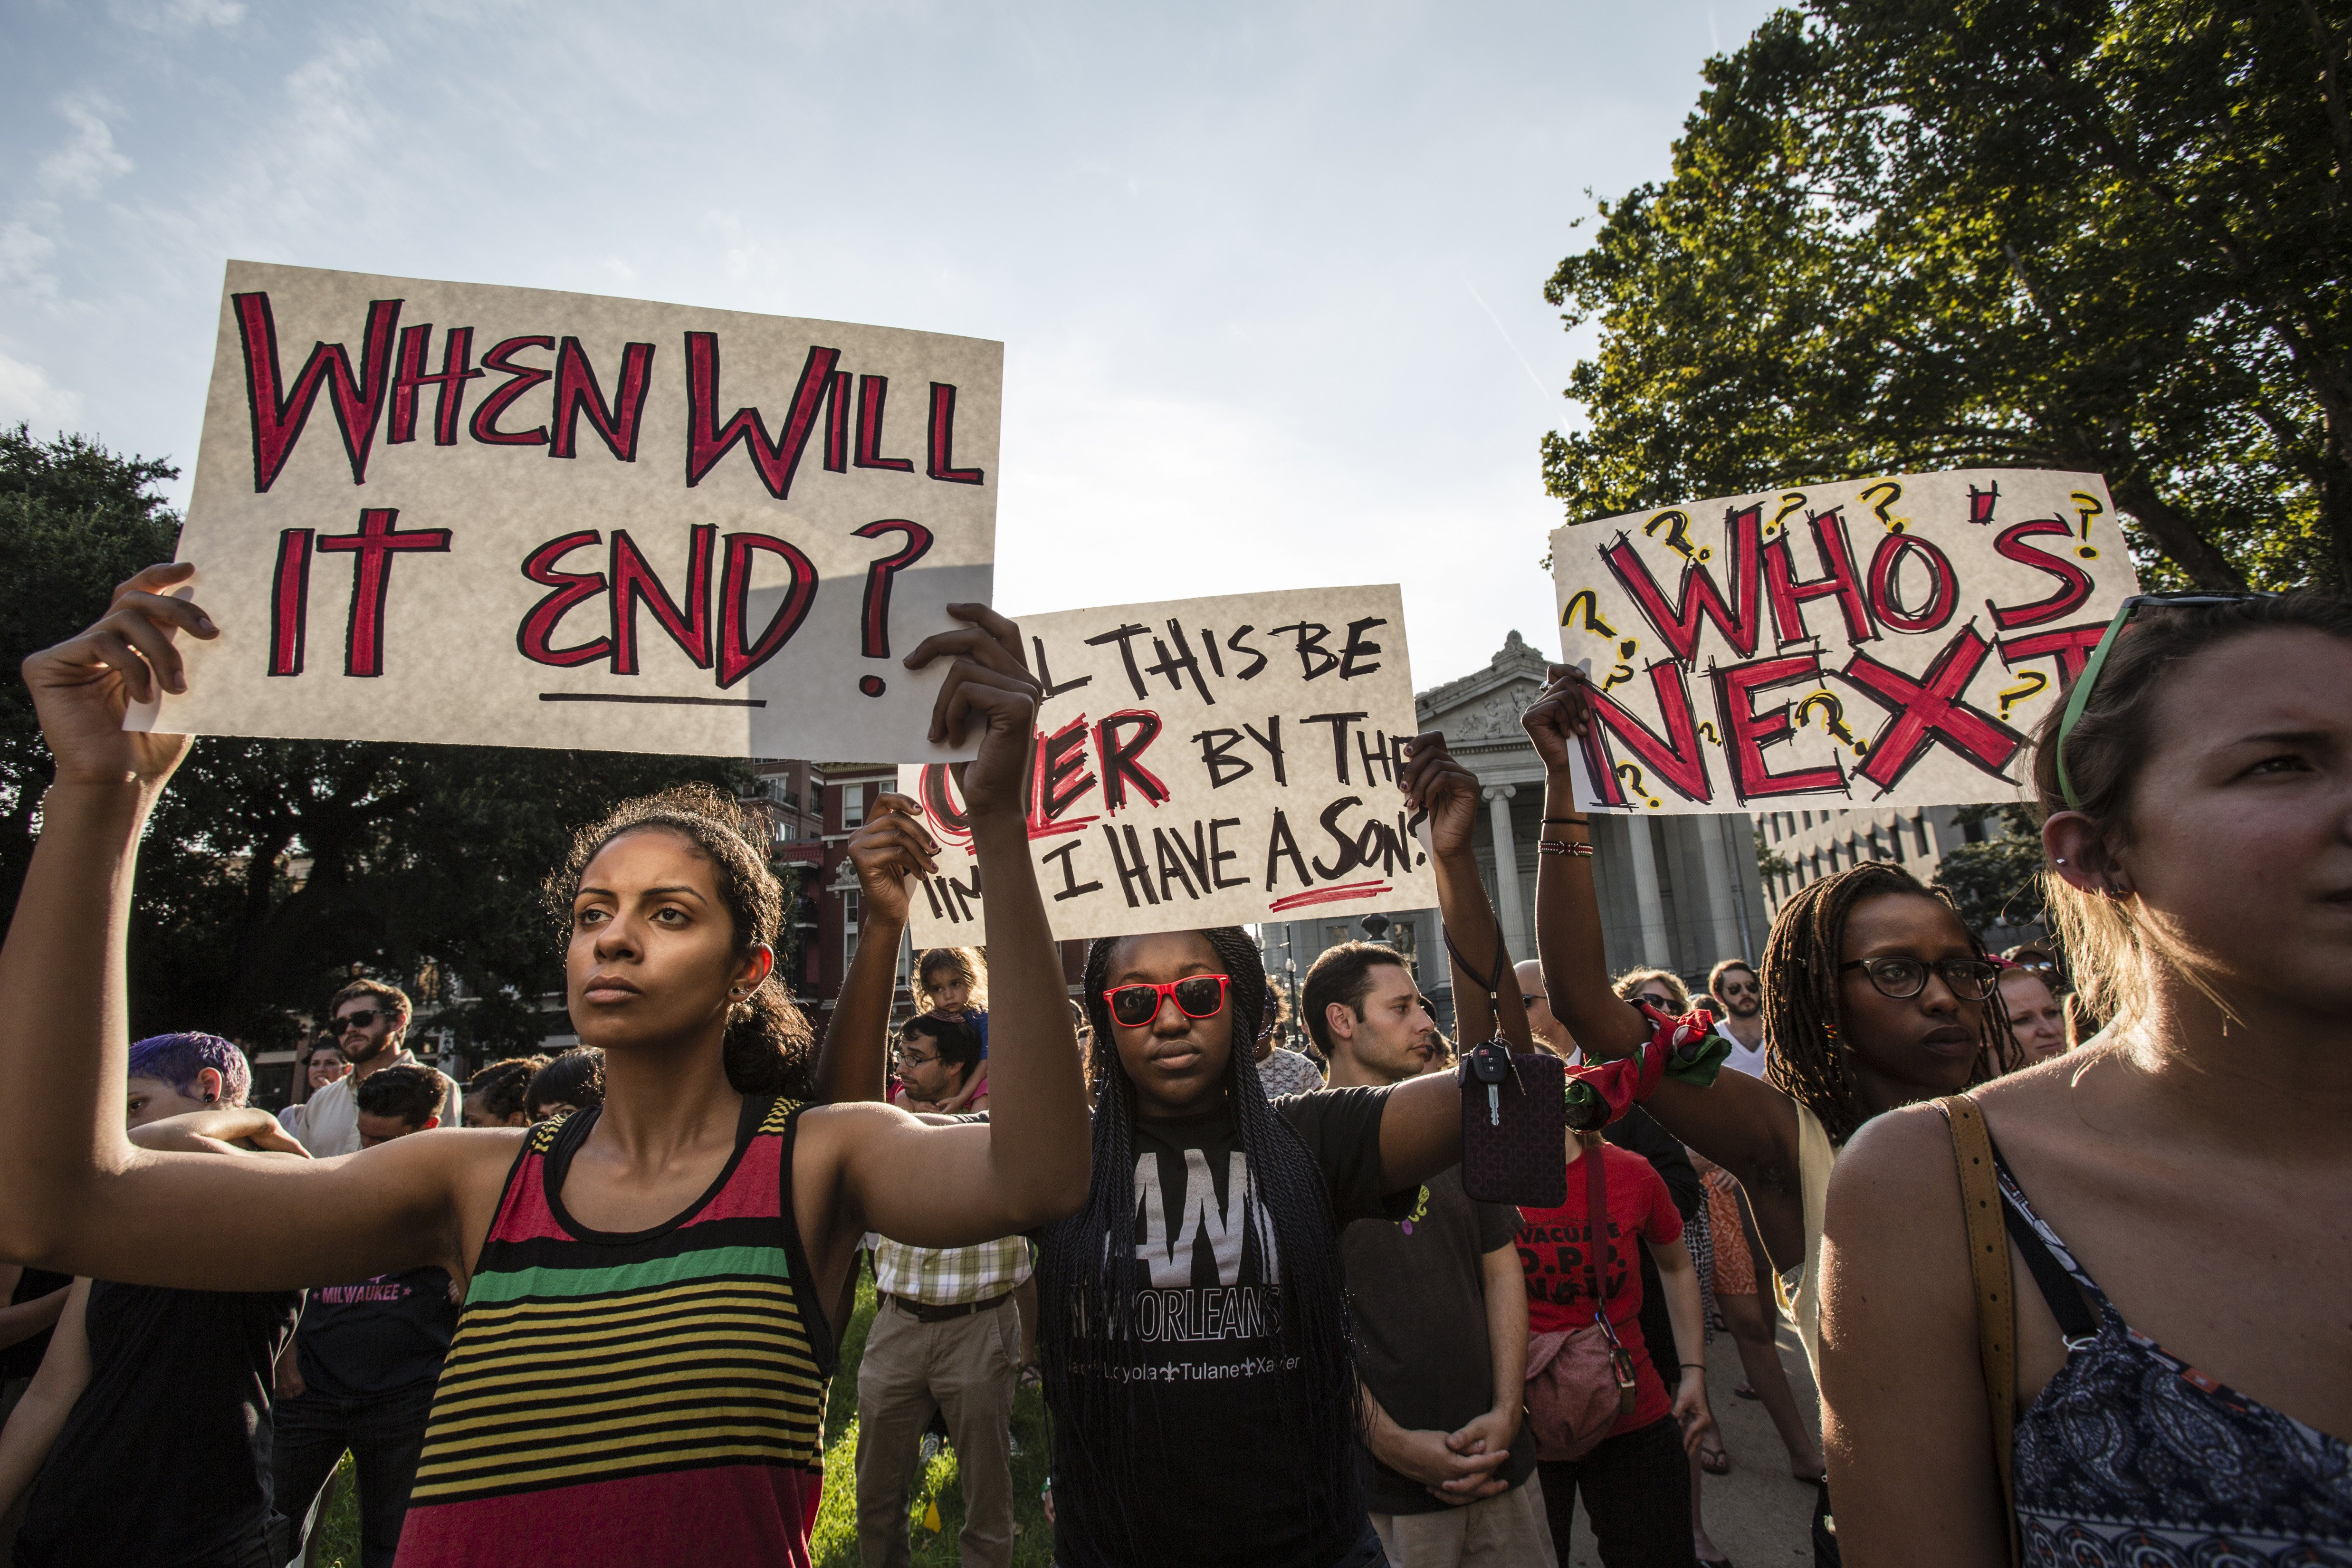 Several hundred people attended a moment of silence in Lafayette Square in downtown New Orleans, followed by a march to the French Quarter on Aug. 14, 2014 following teh shooting of MIchael Brown on Aug. 9, 2014.